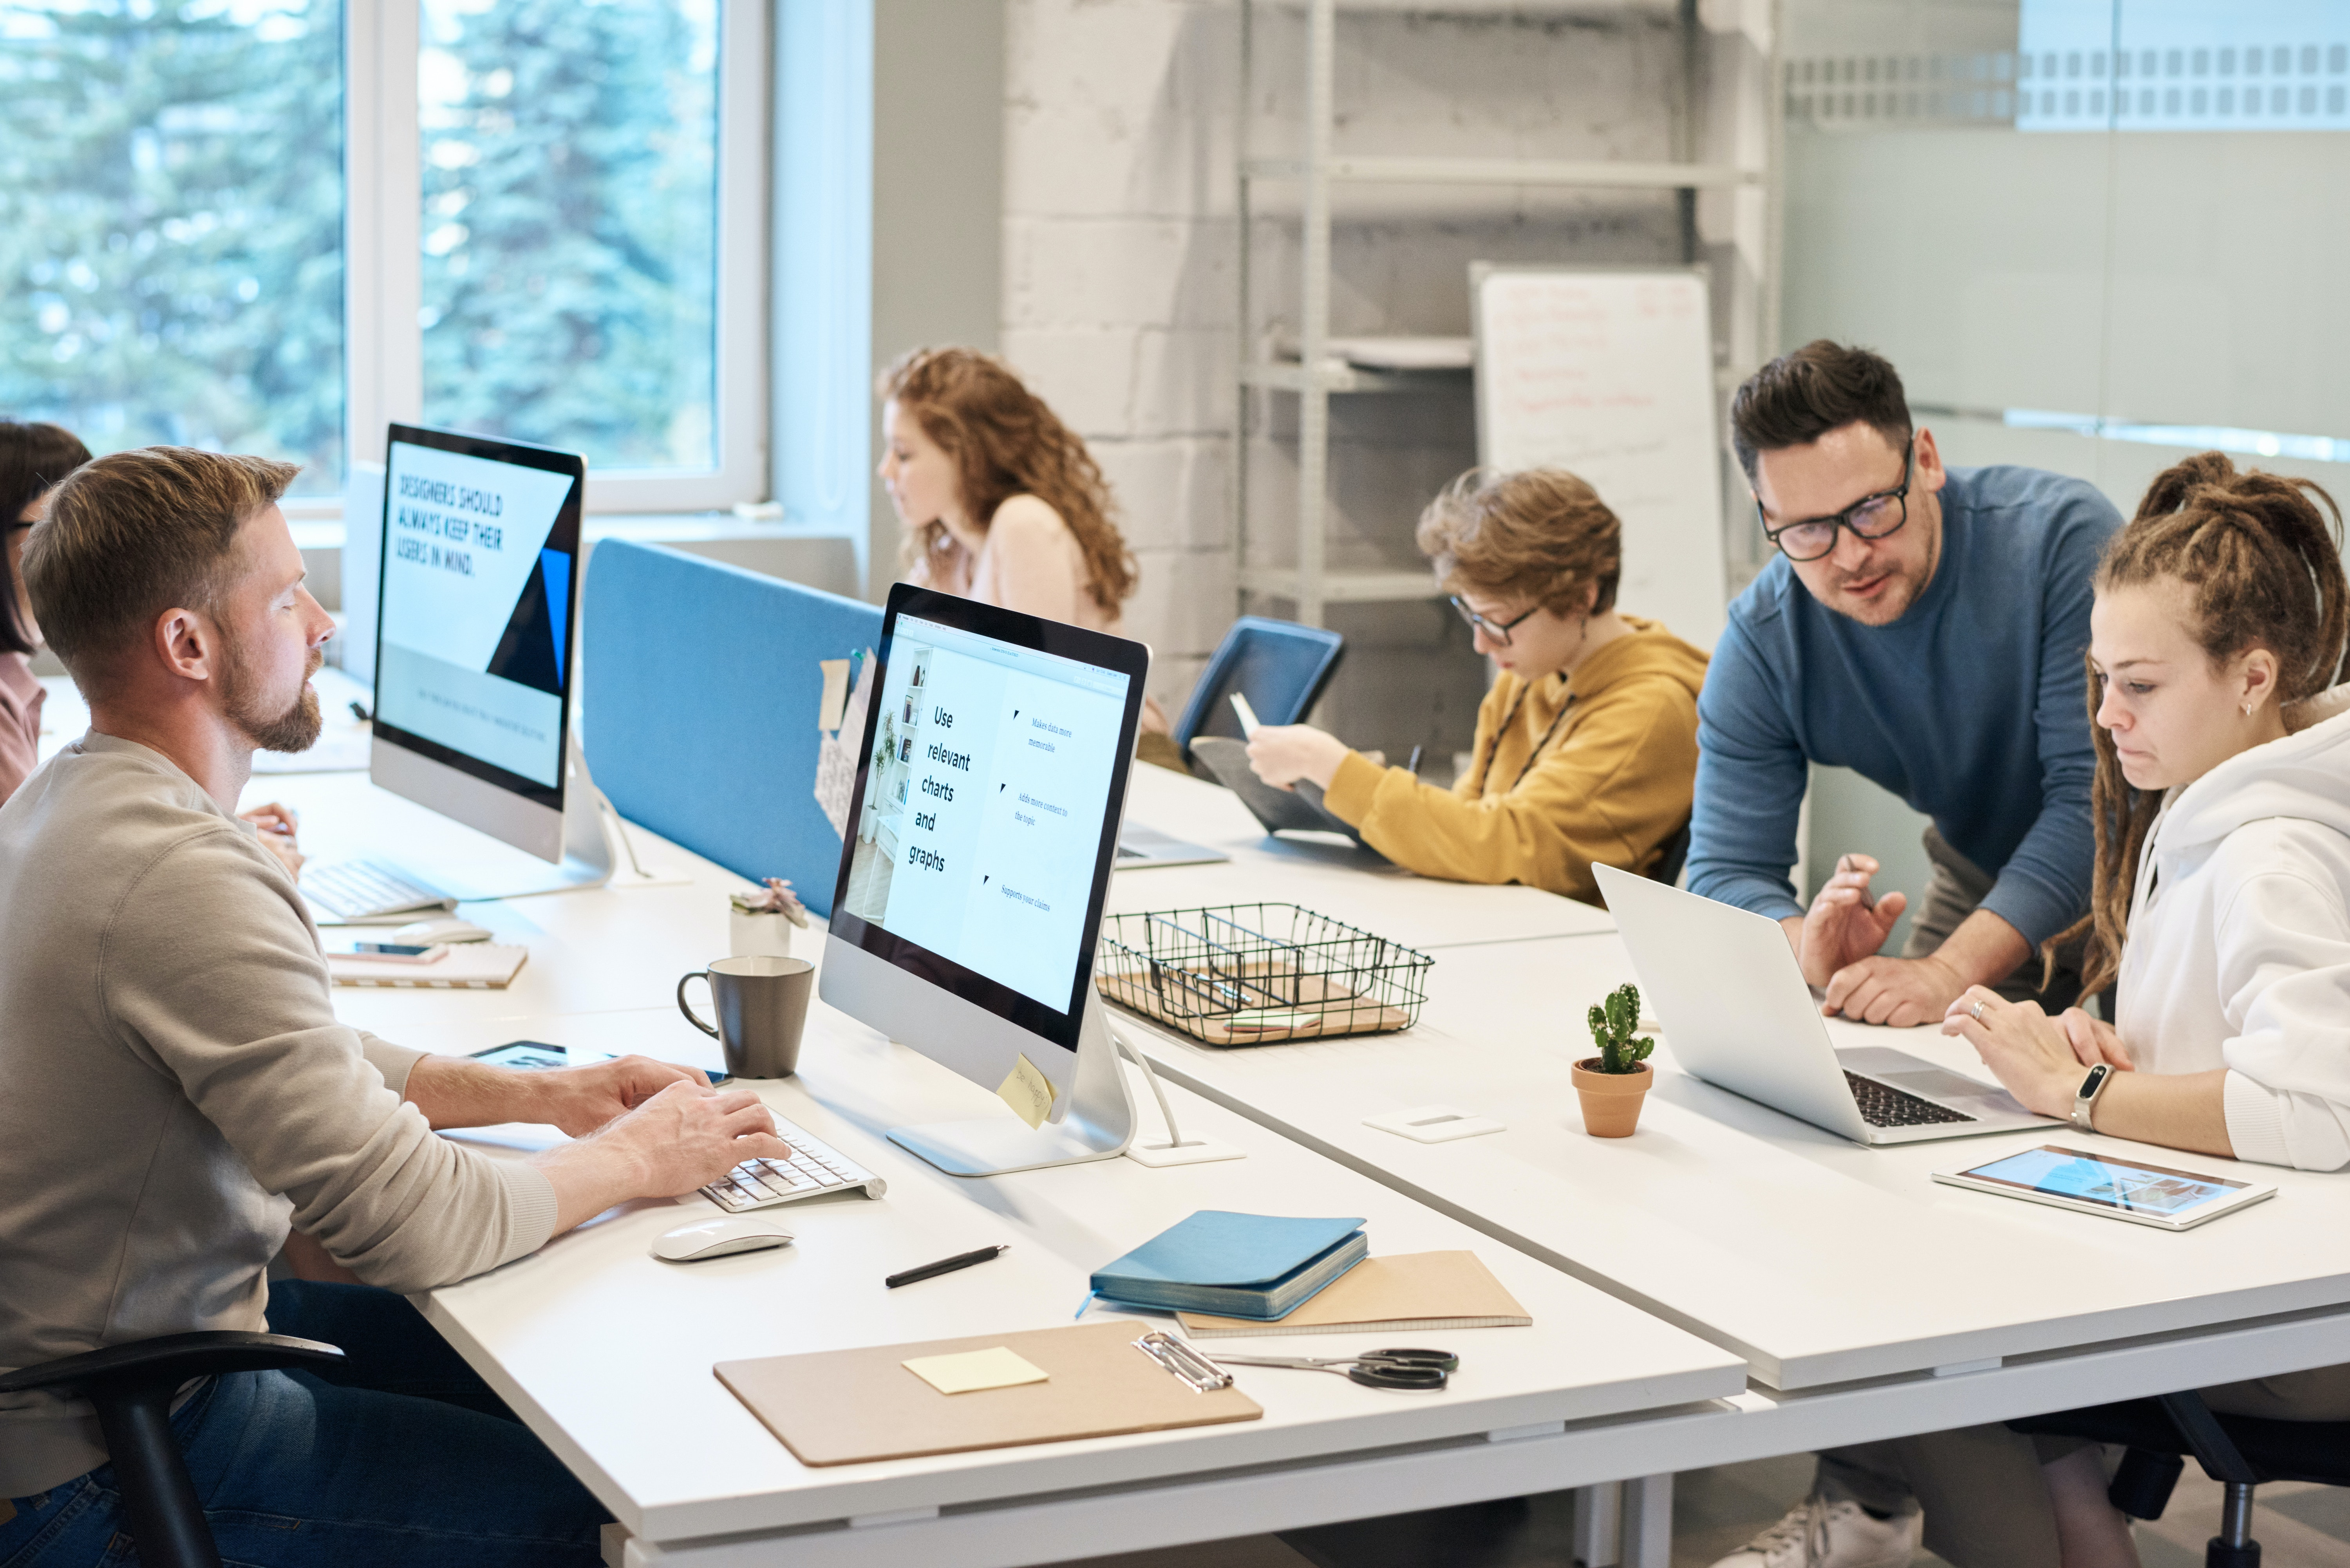 5 Tips For Measuring Your Employees' Time And Productivity Levels